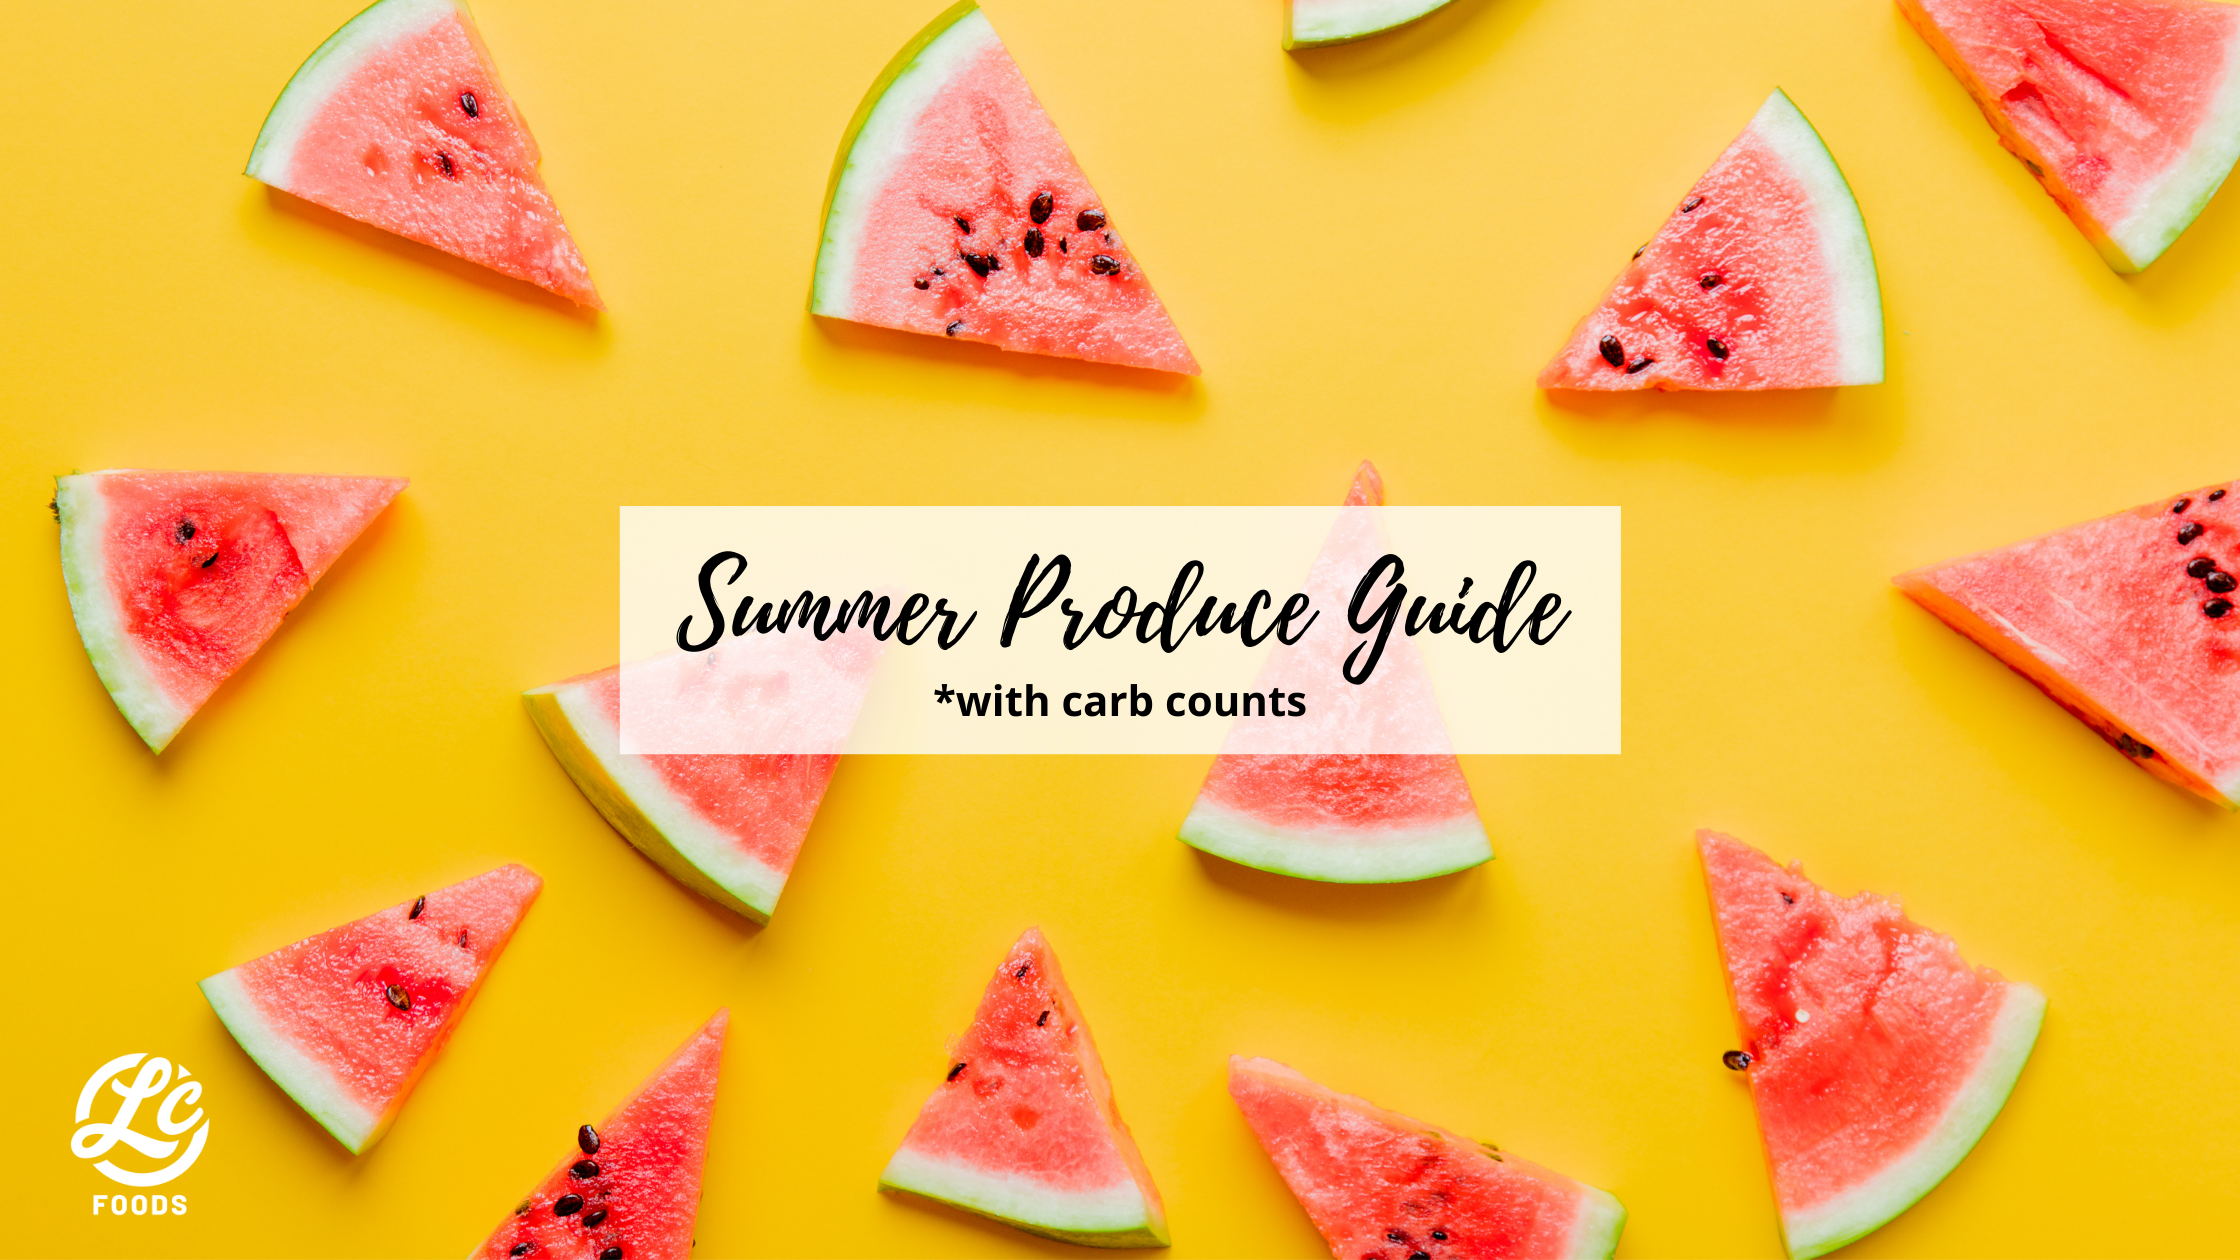 Thumbnail for Summer Produce Guide